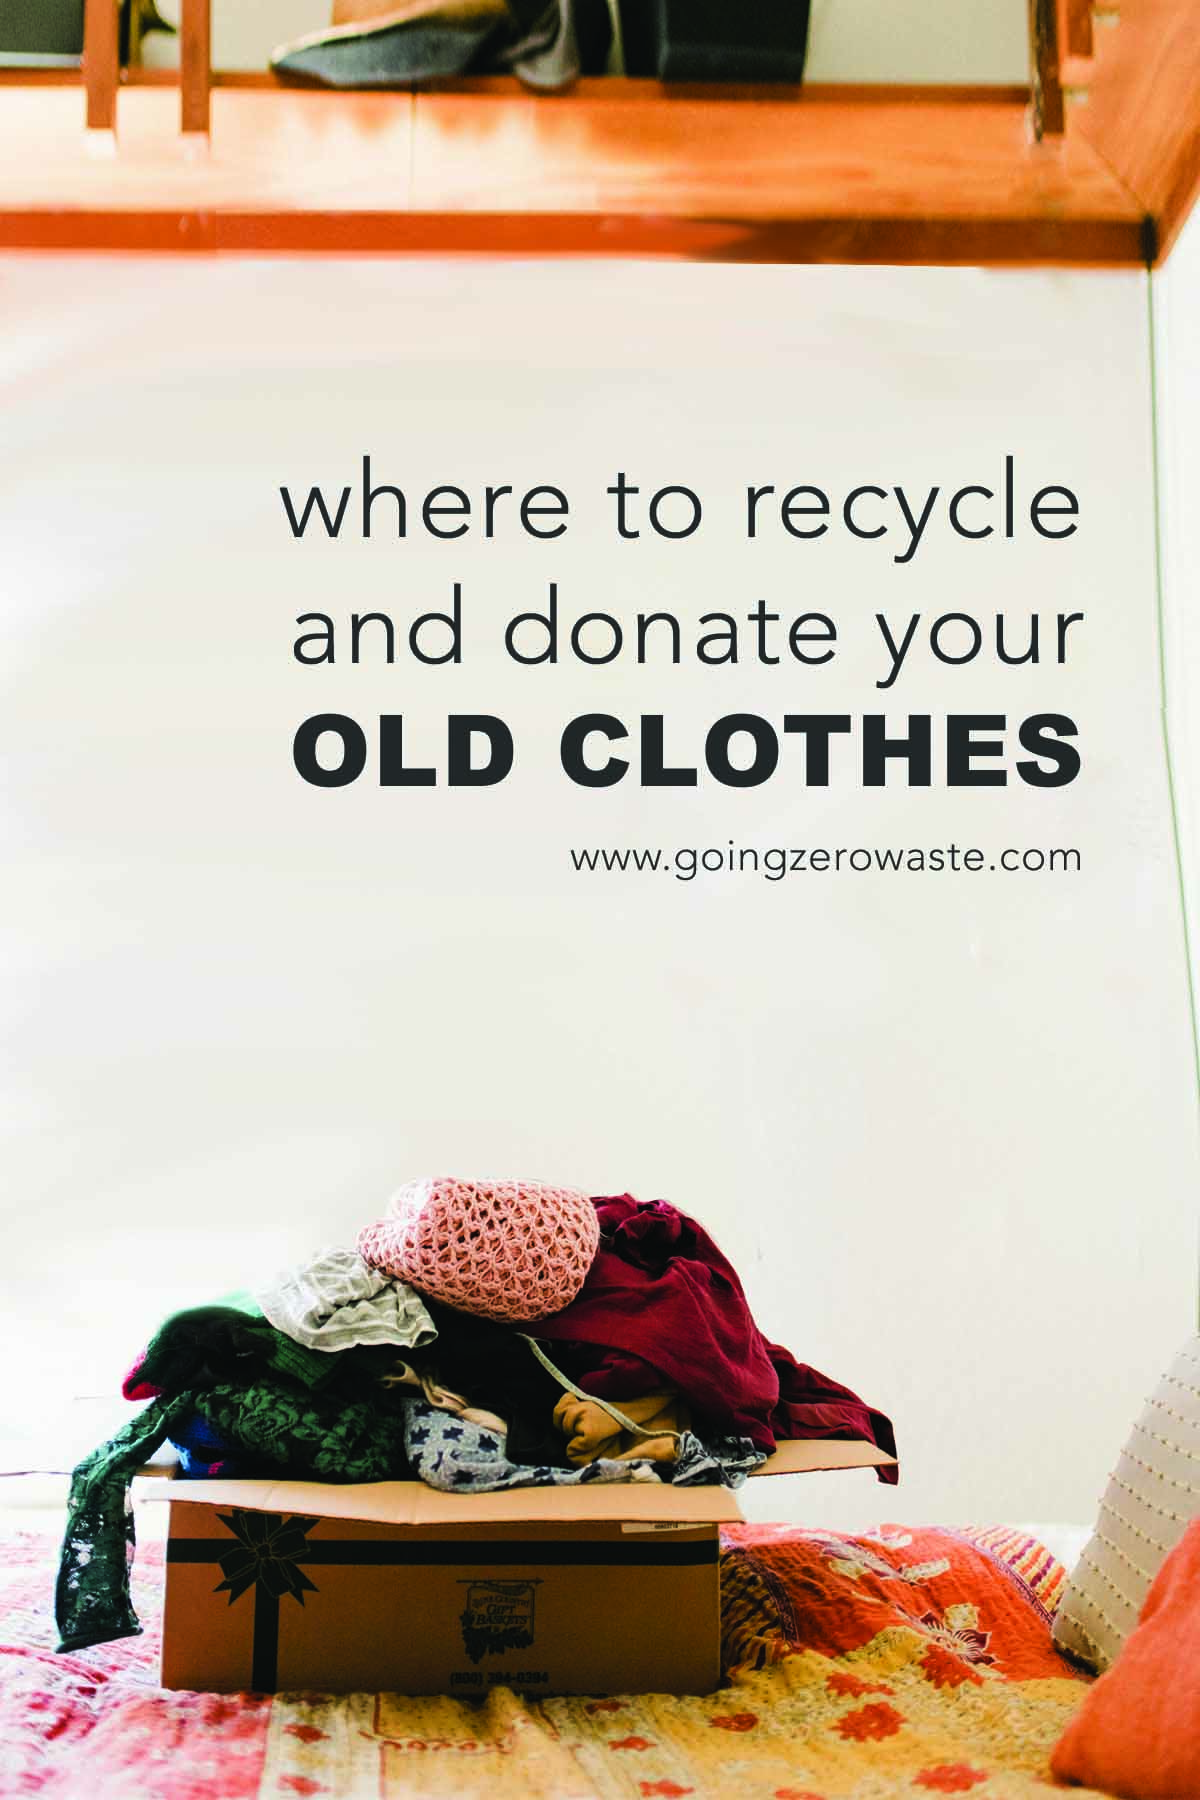 Where to Recycle and Donate Your Old Clothes from www.goingzerowaste.com #zerowaste #ecofriendly #gogreen #sustainable #recycle #oldclothes #donate #thrifting #secondhand